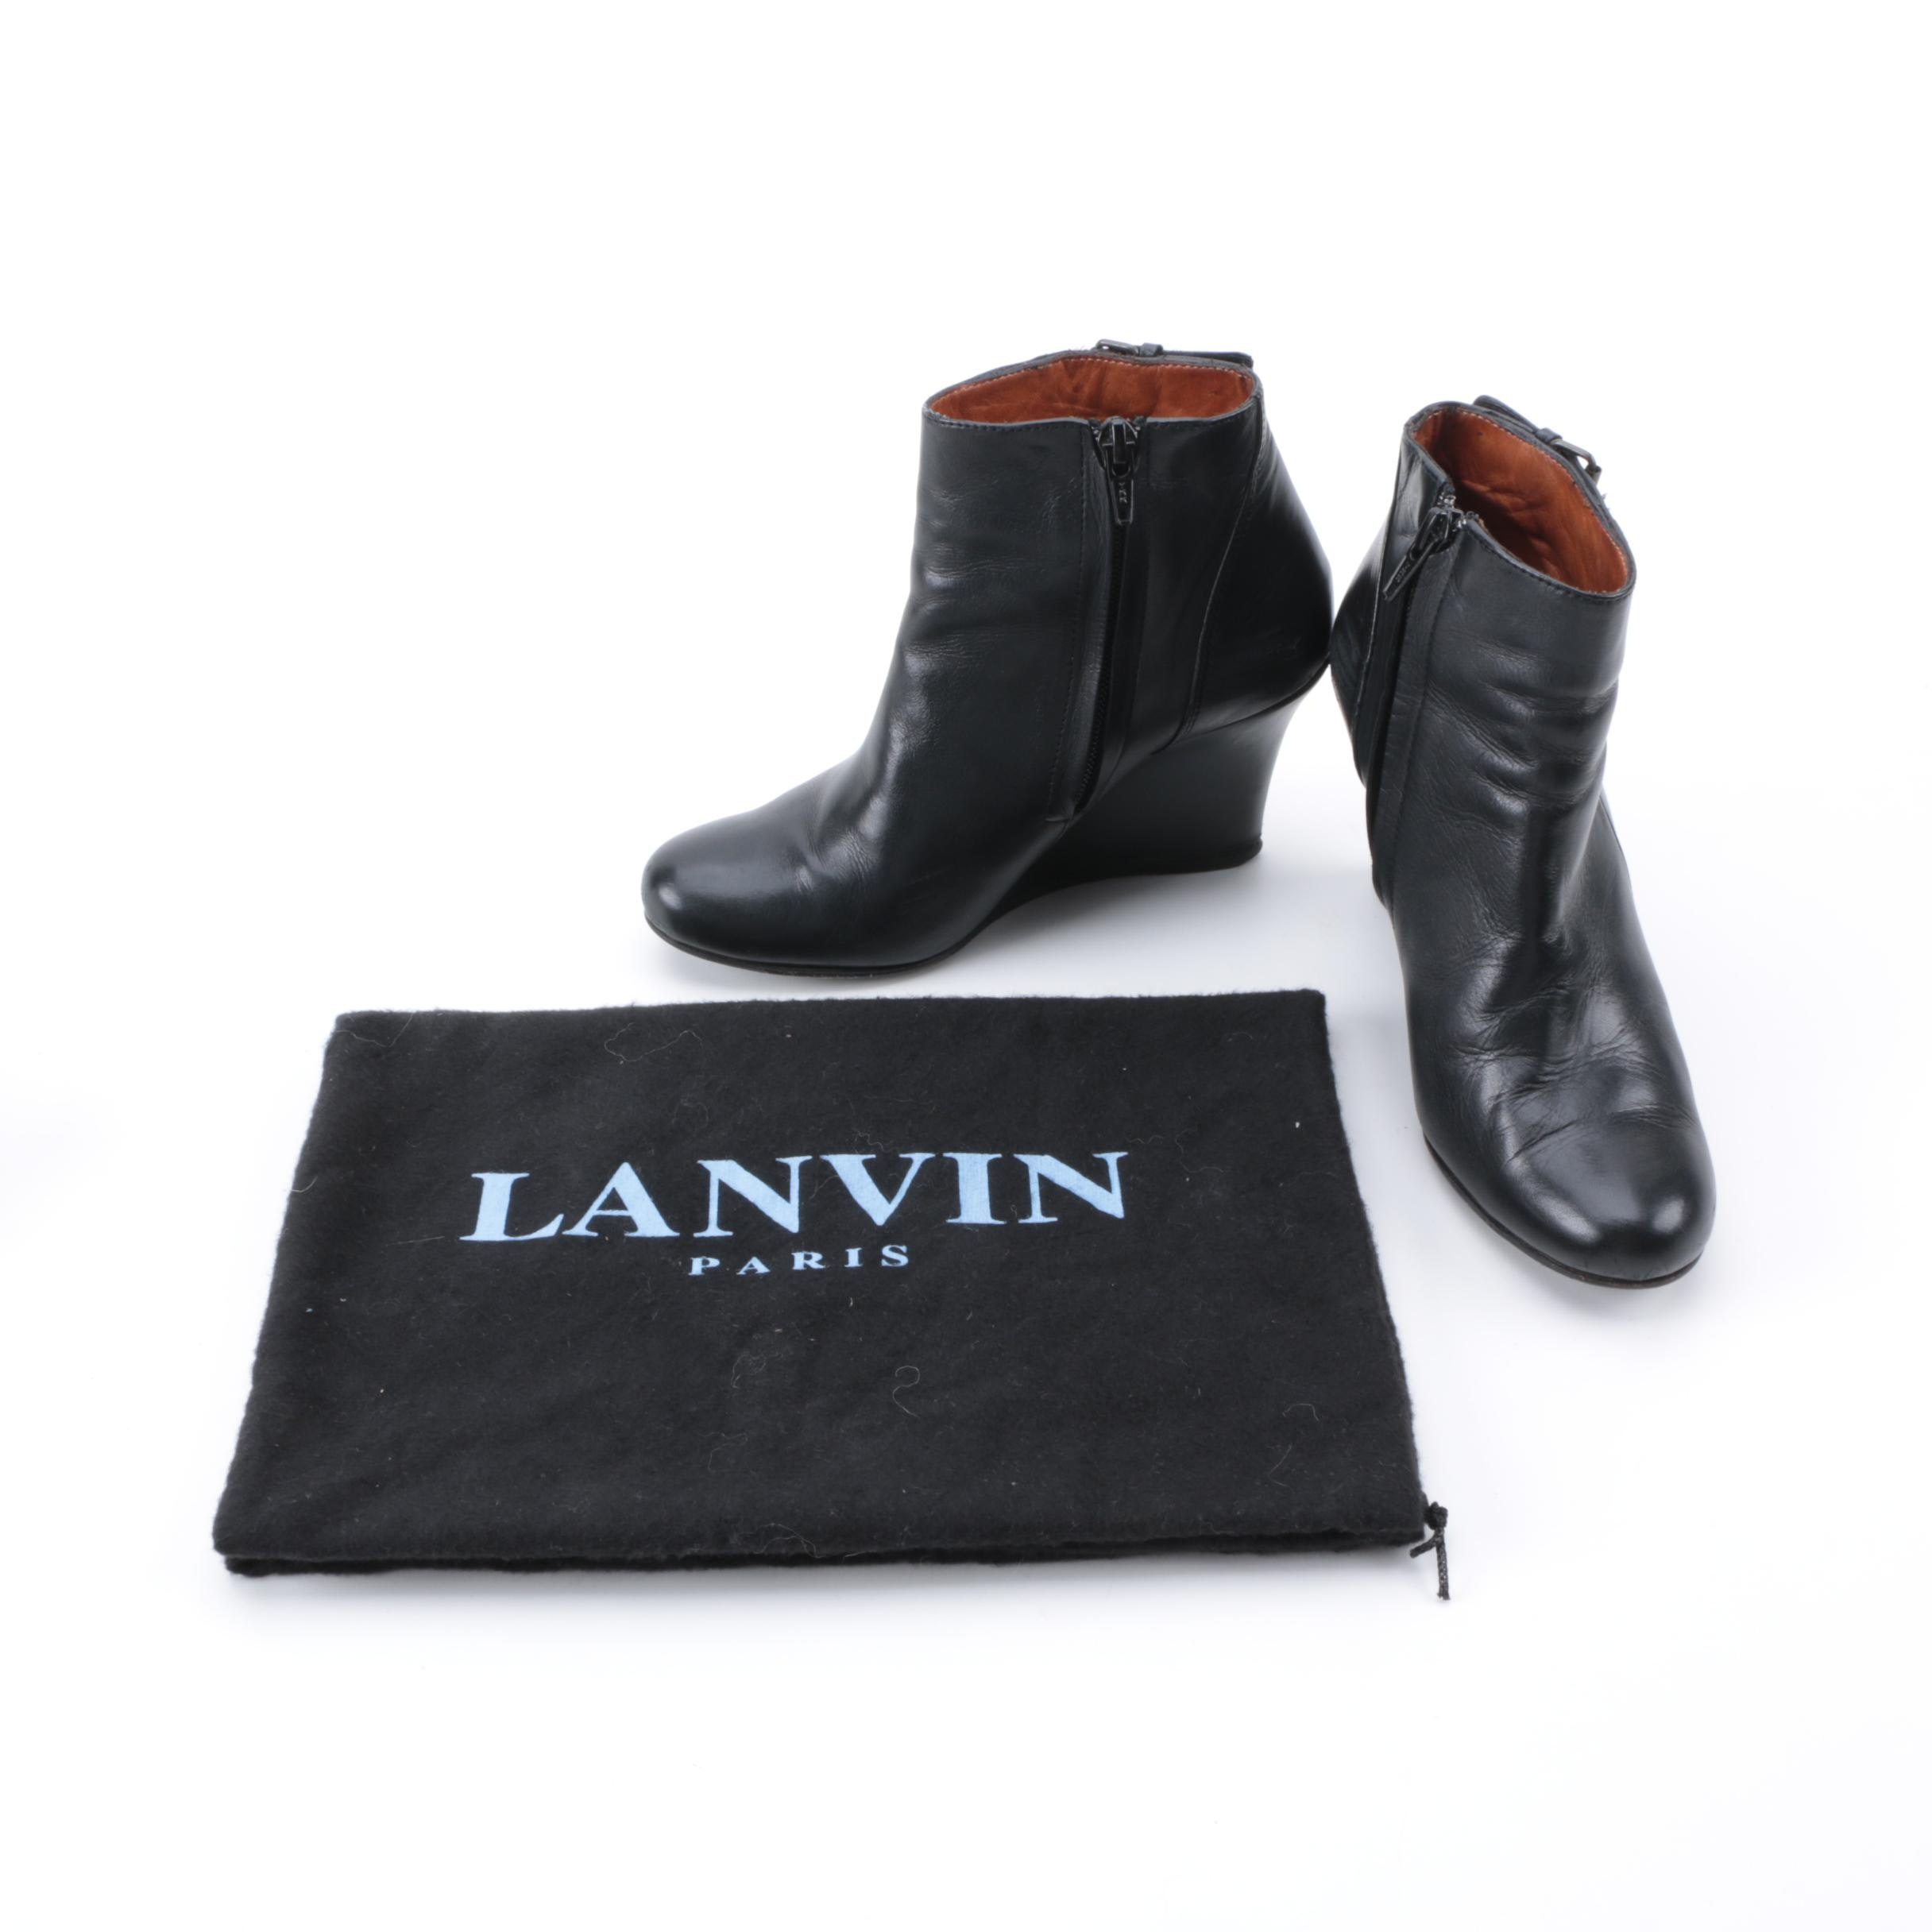 Women's Lanvin Black Leather Wedge Ankle Boots